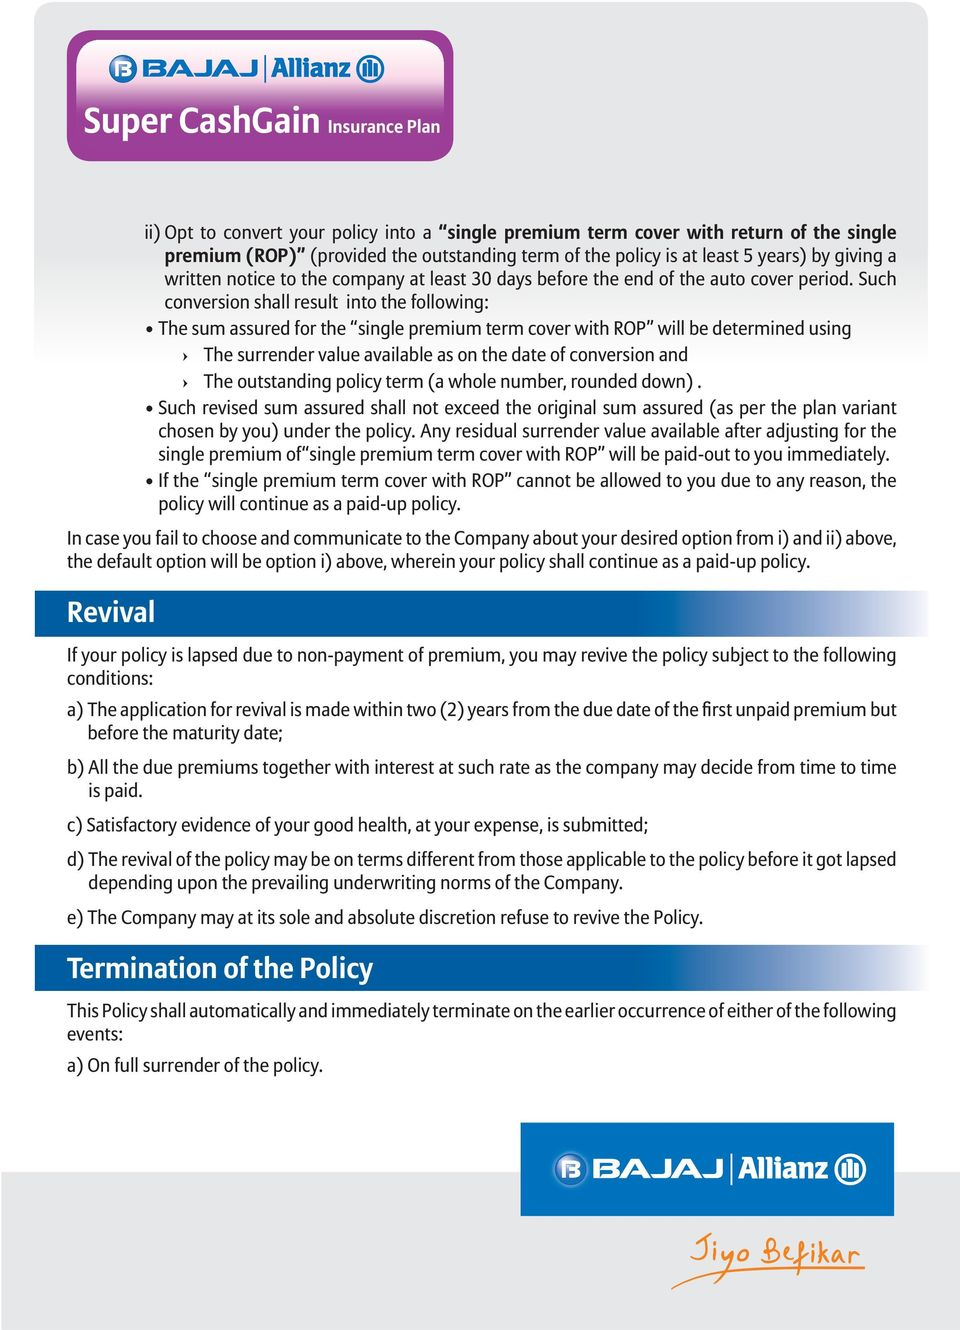 Any residual surrender value available after adjusting for the policy will continue as a paid-up policy.